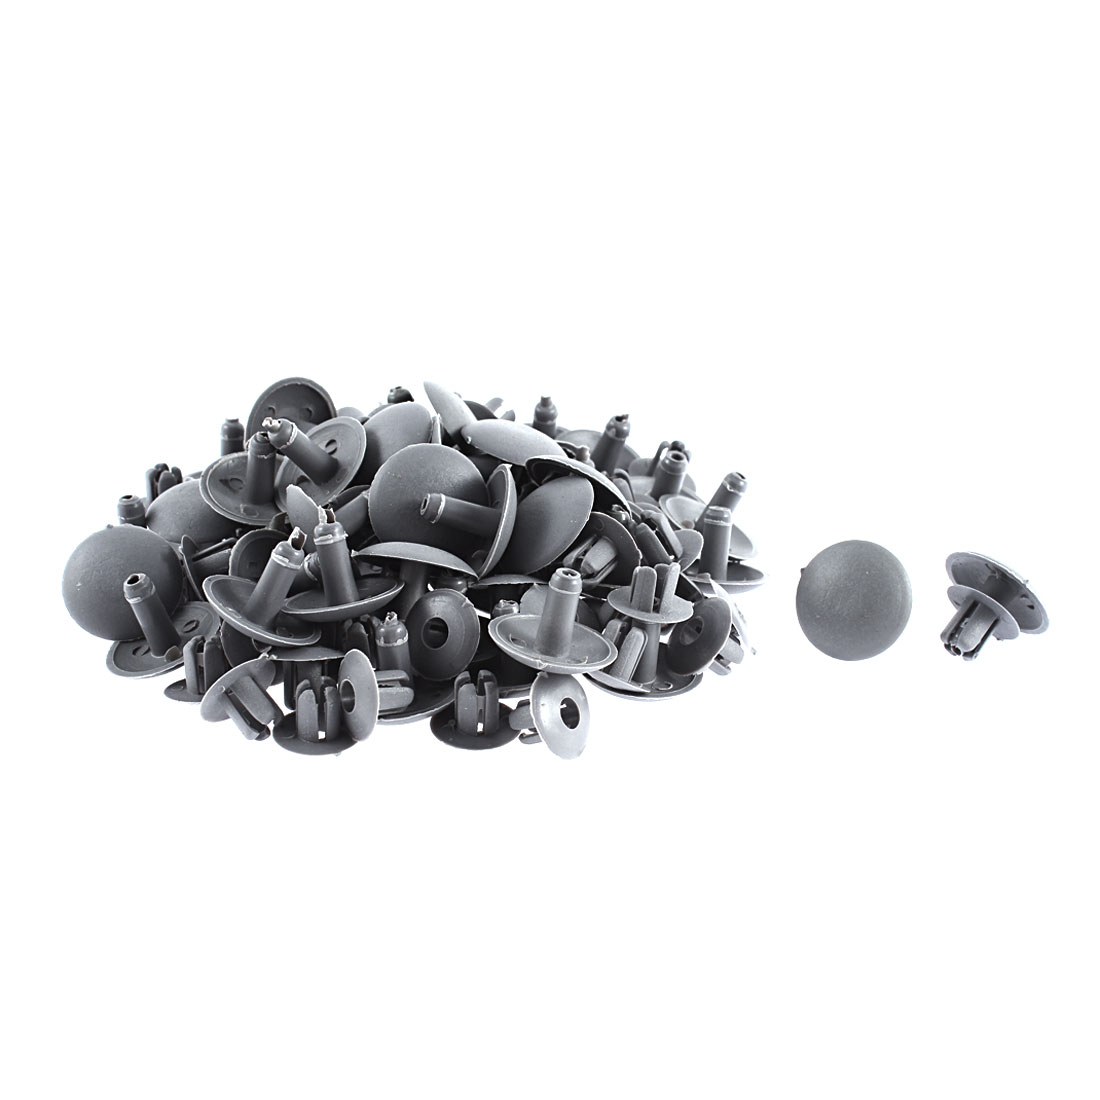 52Pcs Gray Door Trim Retainer Clips 8mm Hole 22mm Head for Pick-up